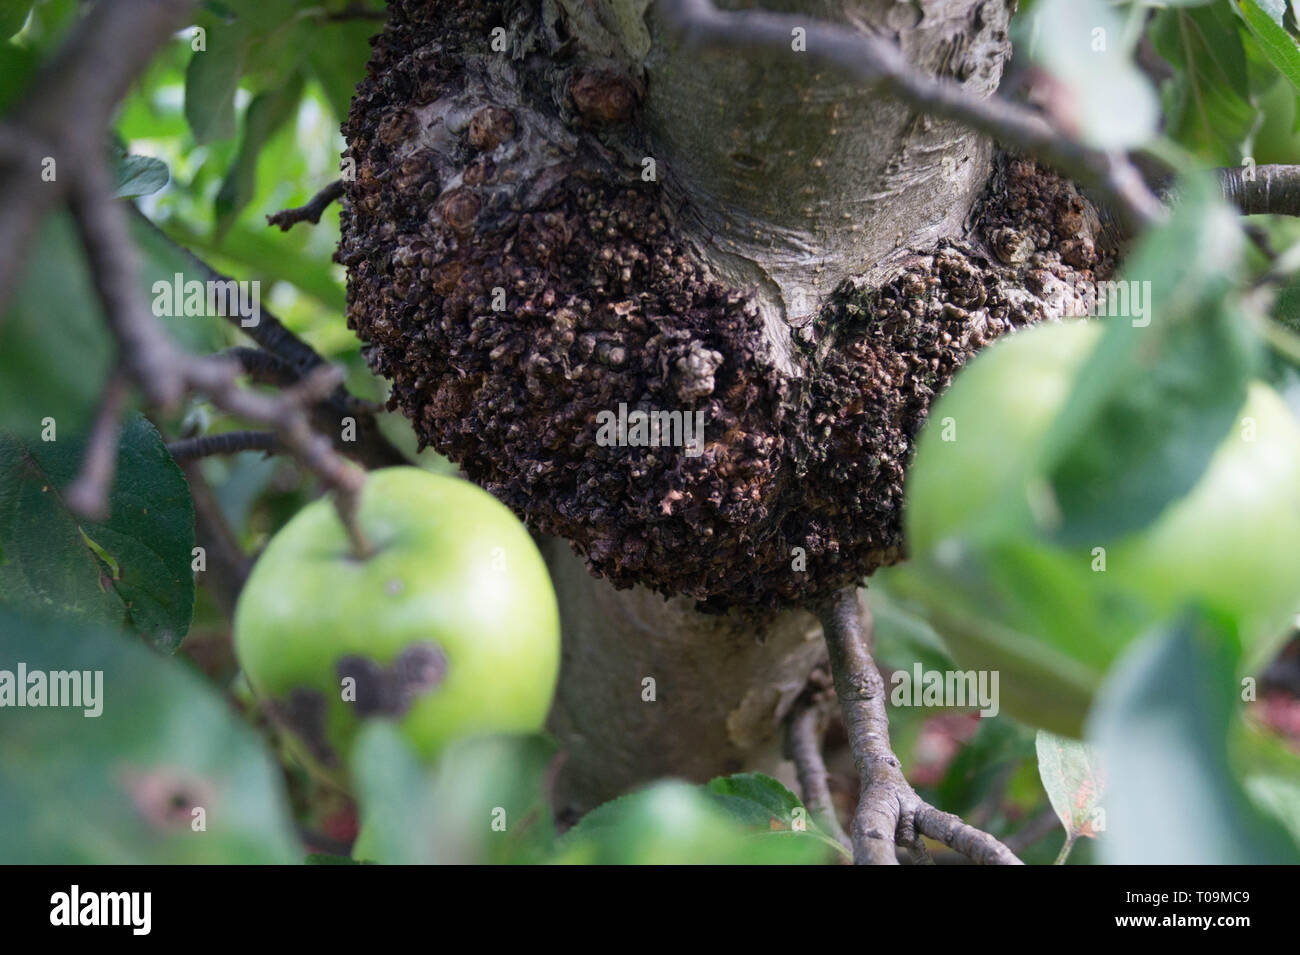 Fungal infection of apples - Stock Image